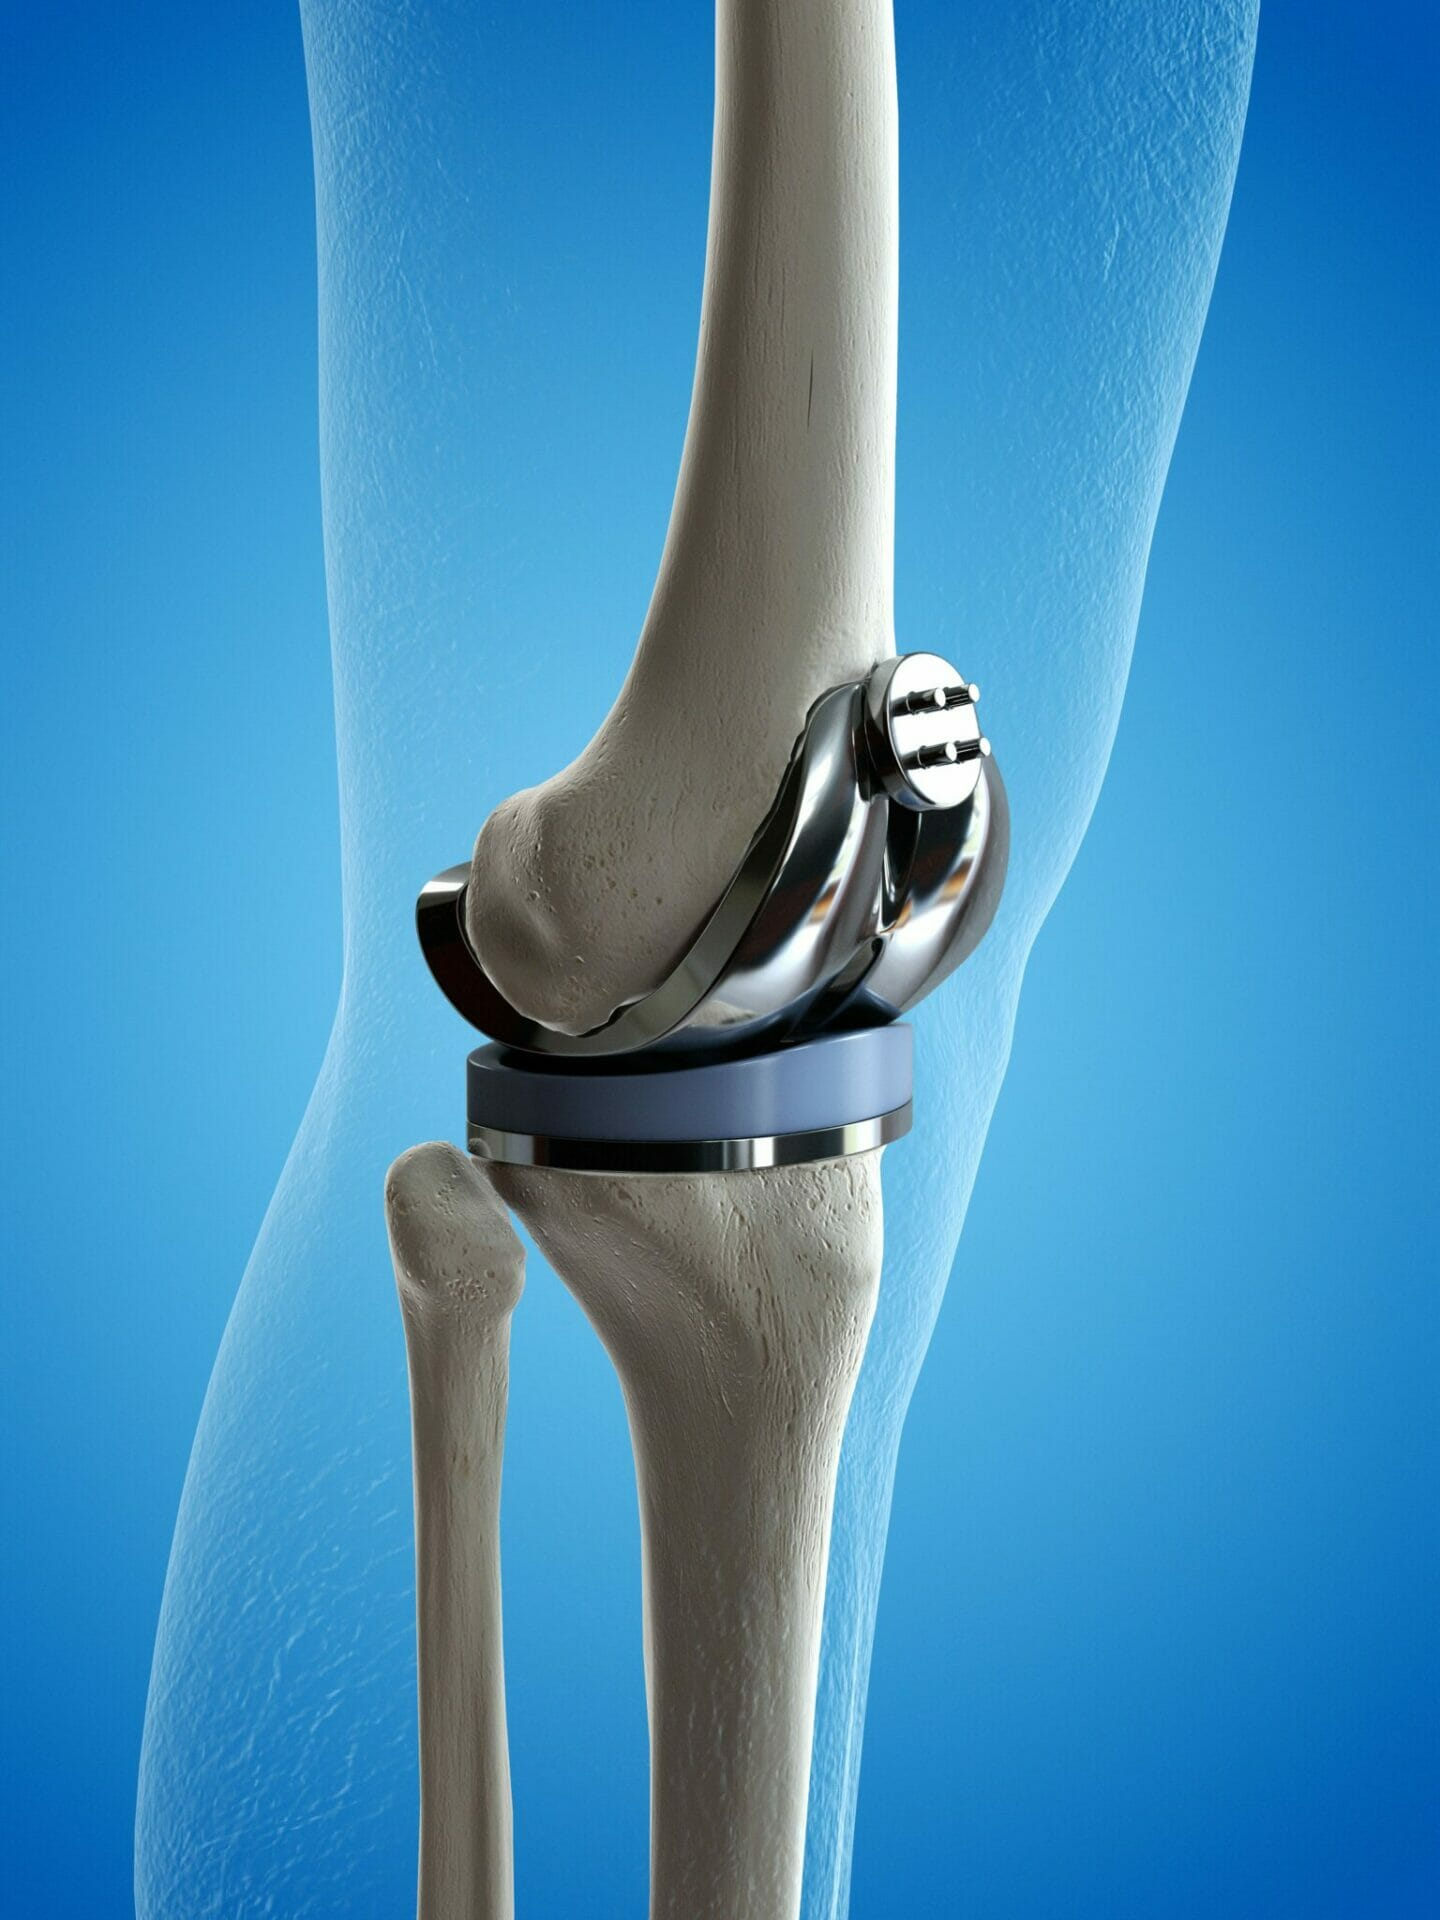 What exercises should I do immediately after my Knee Replacement?